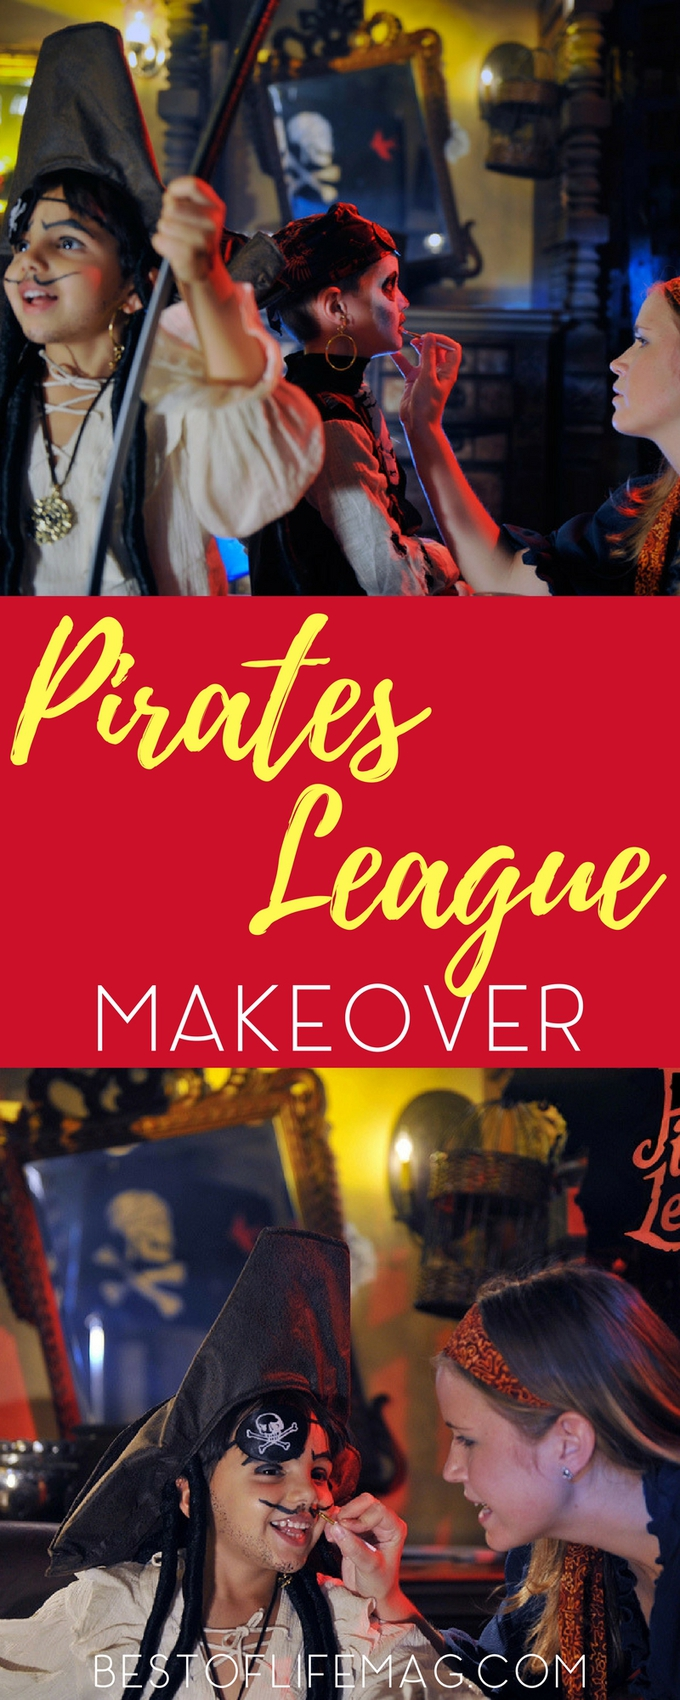 Wondering what to expect with a Pirates League Makeover at Disneyland? Our video walks you through the entire process so you can determine if it's a fit for your child. Things to Do at Disneyland | Disneyland Makeovers | Ahoy Matey | A Pirate's League